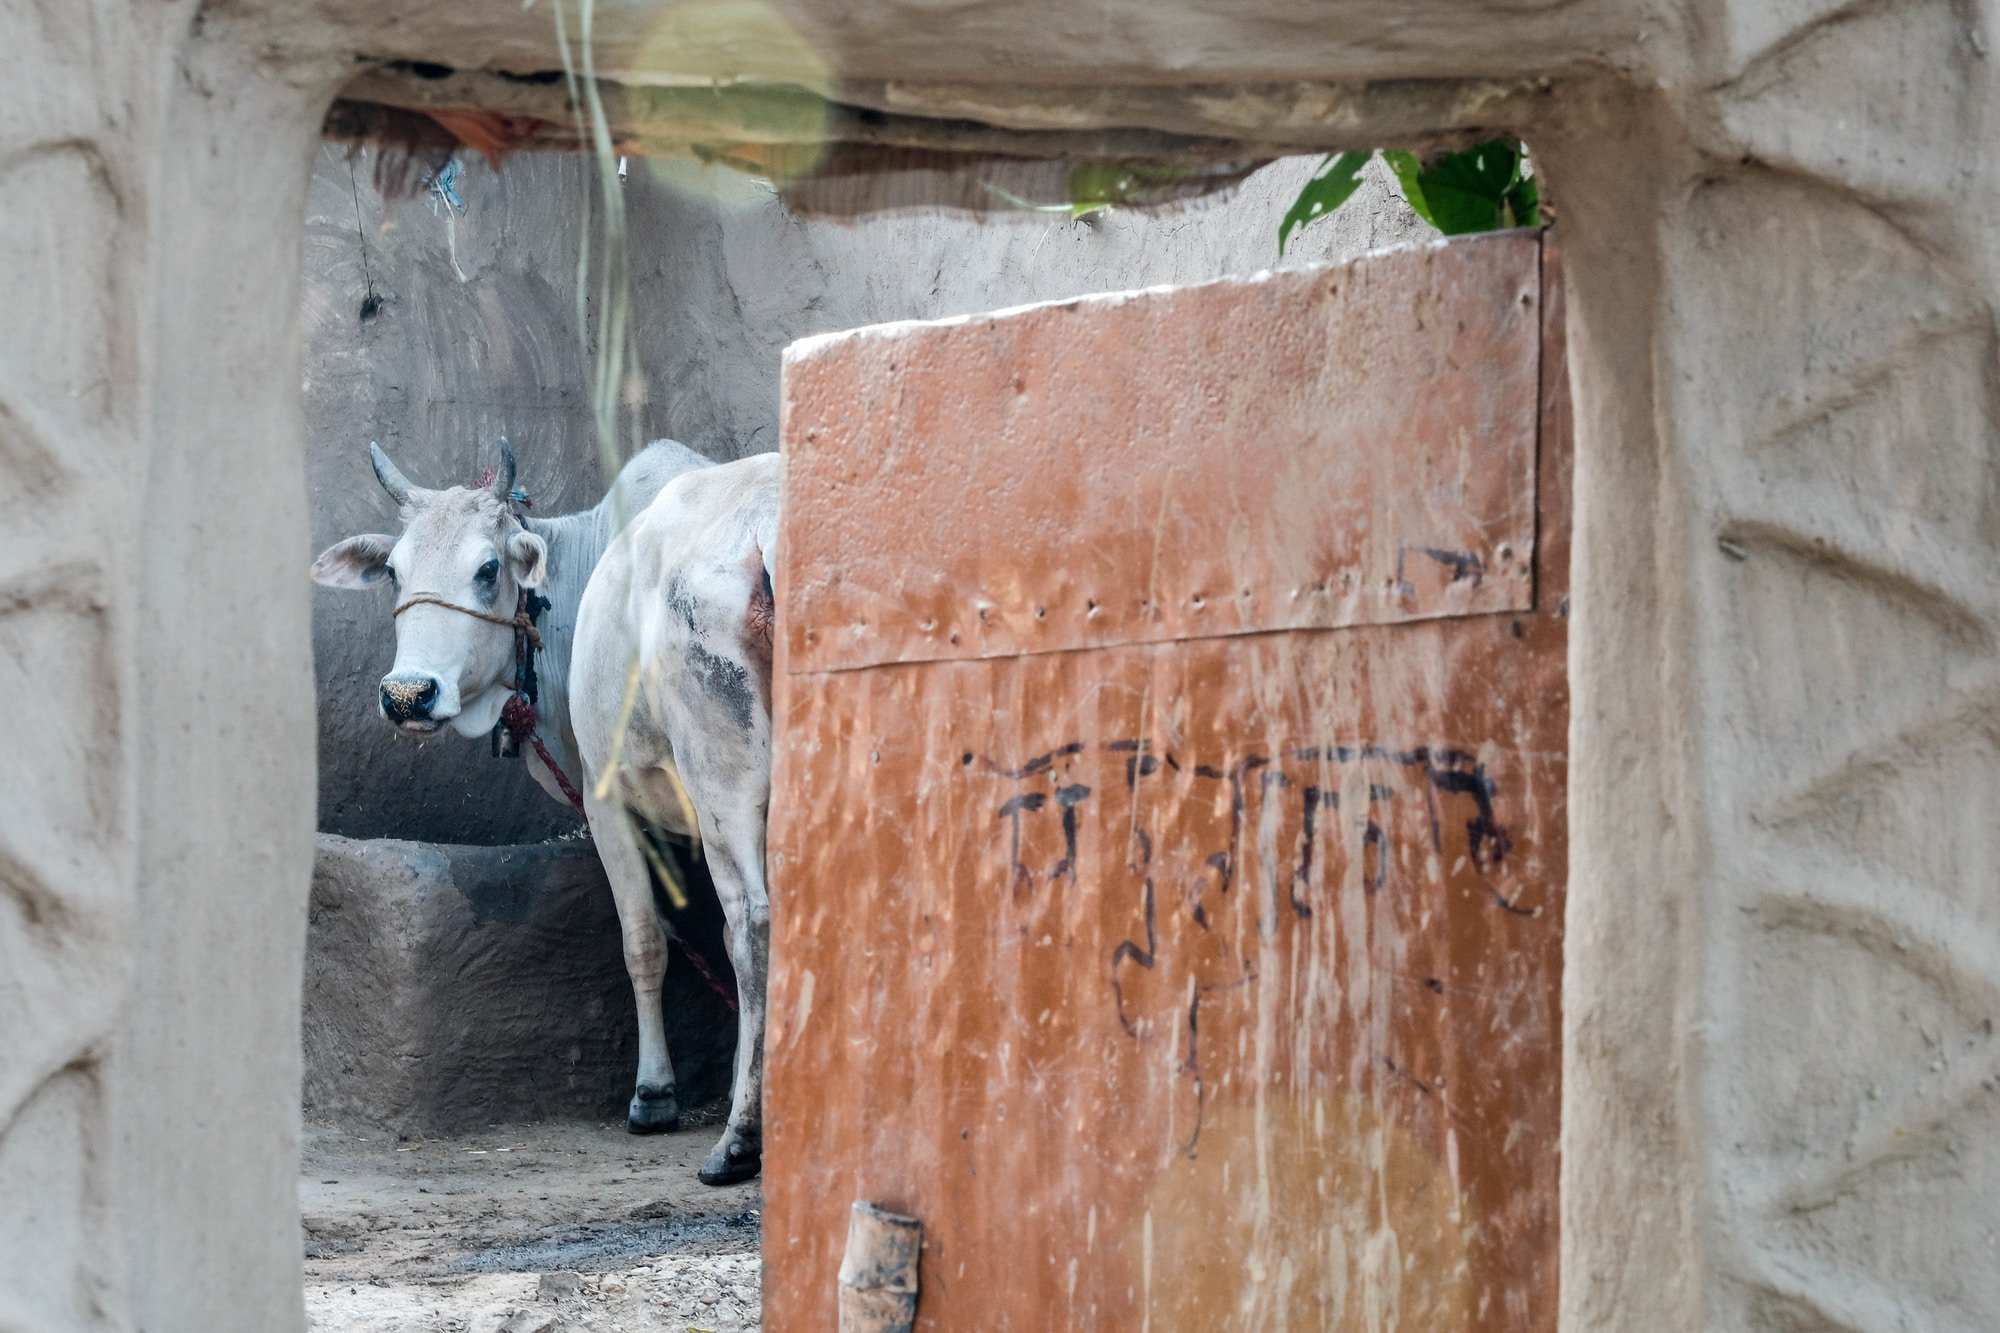 Cow inside a mud hut in remote village, Uttar Pradesh, India